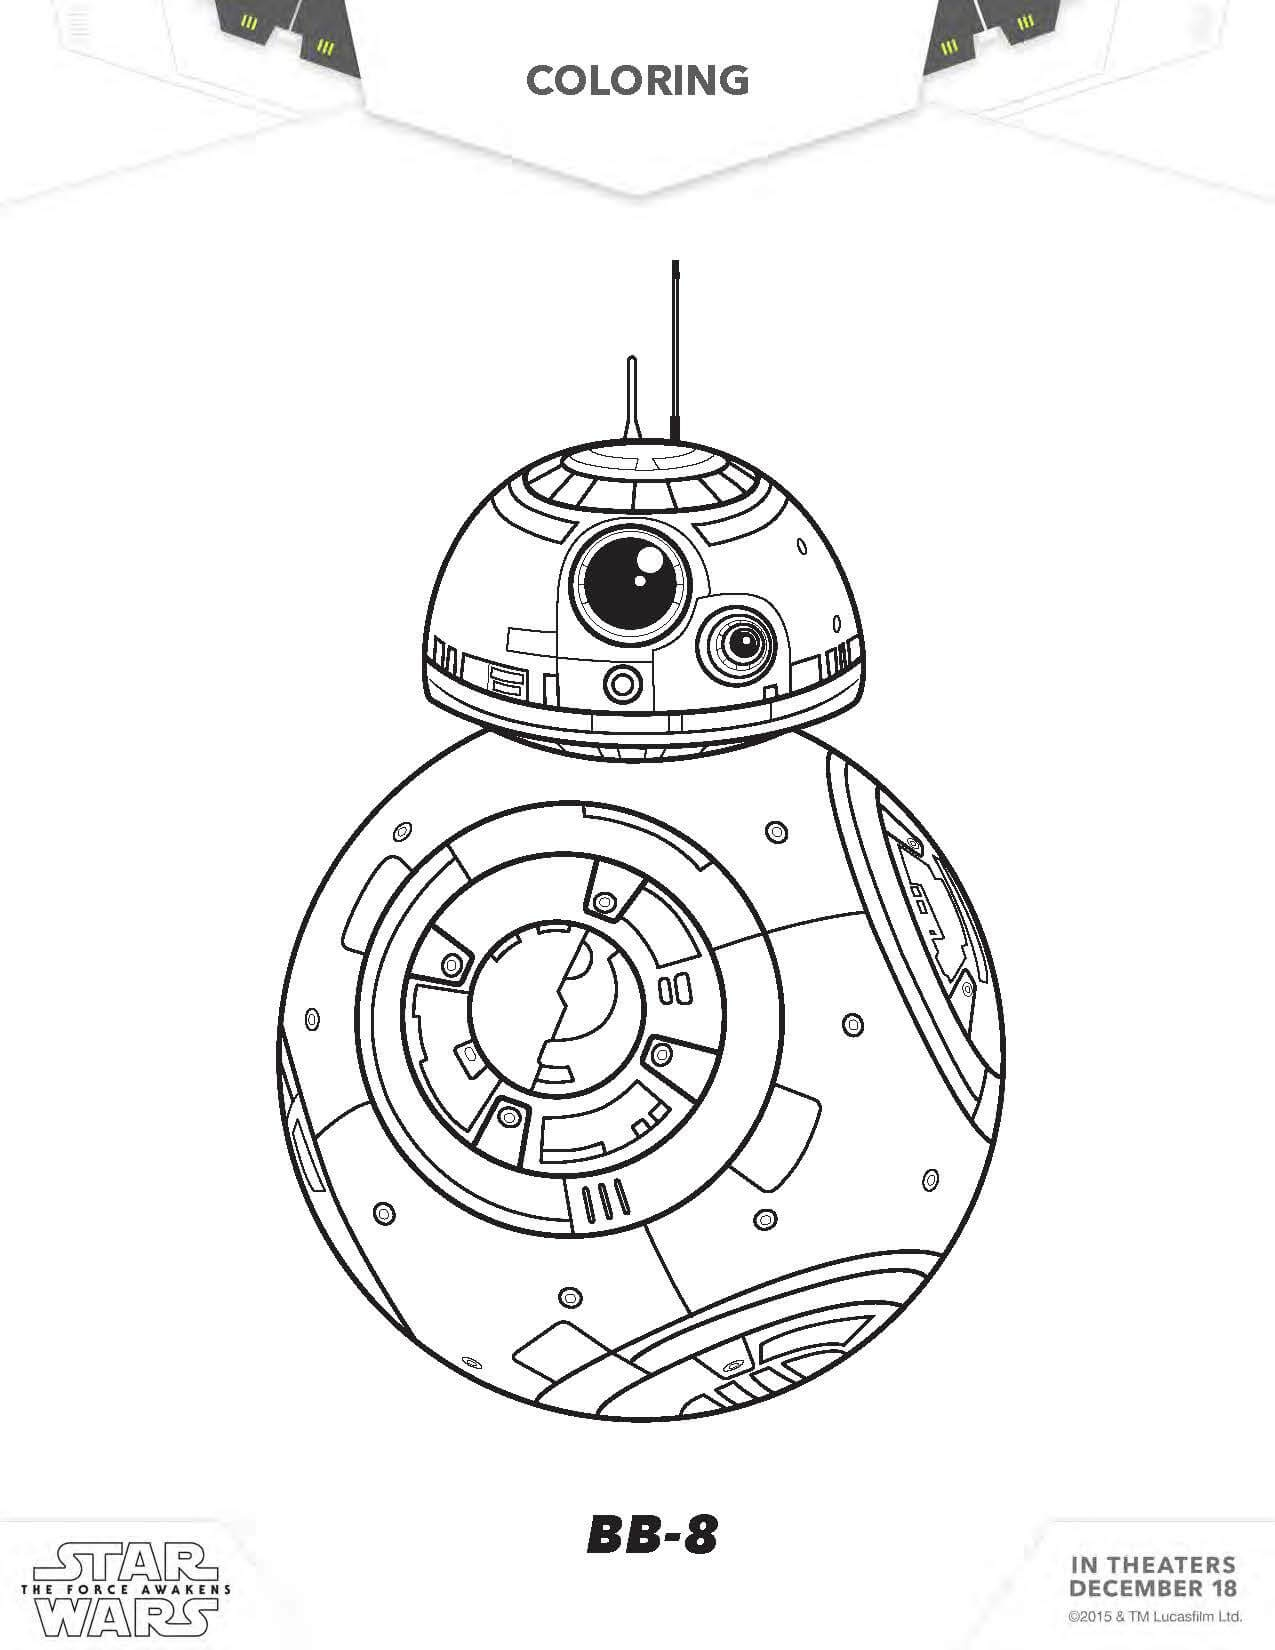 Lovely Sensational Bb8 Coloring Page Star Wars Pages the force Collection Of Fresh Star Wars Coloring Pages to Print